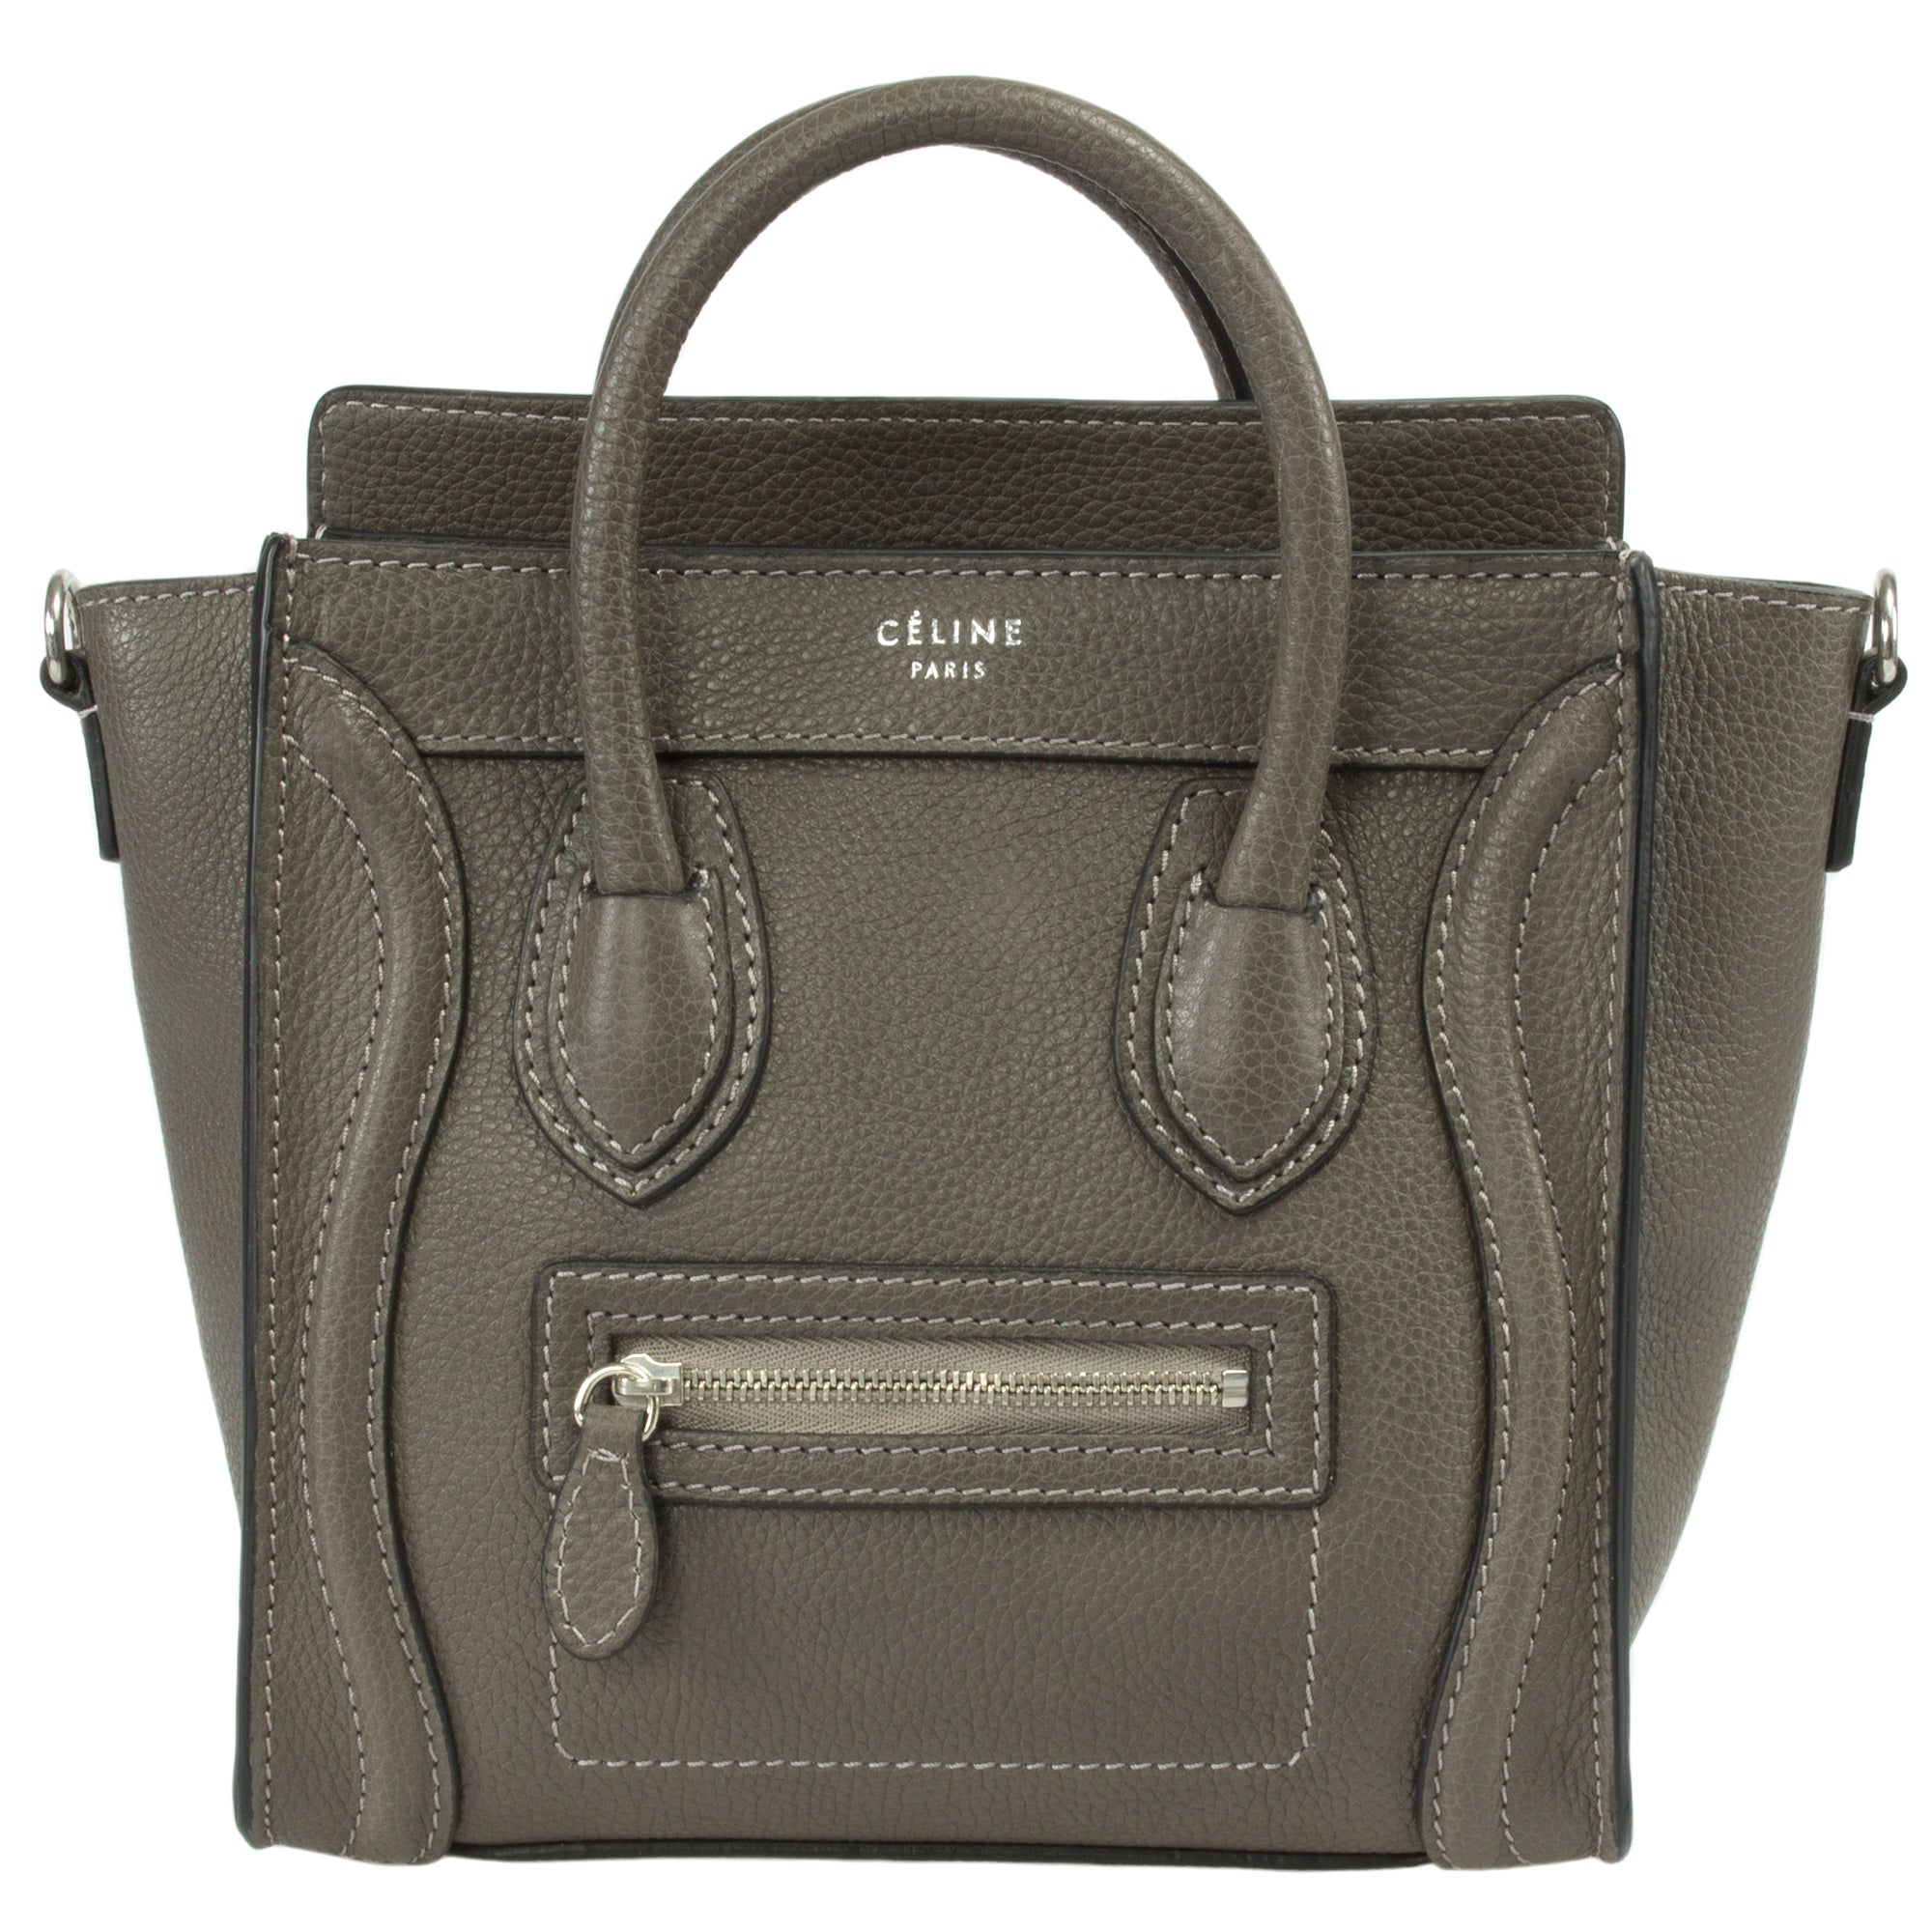 Celine Nano Luggage Grey Leather Bag | gray w/ Silver Hardware